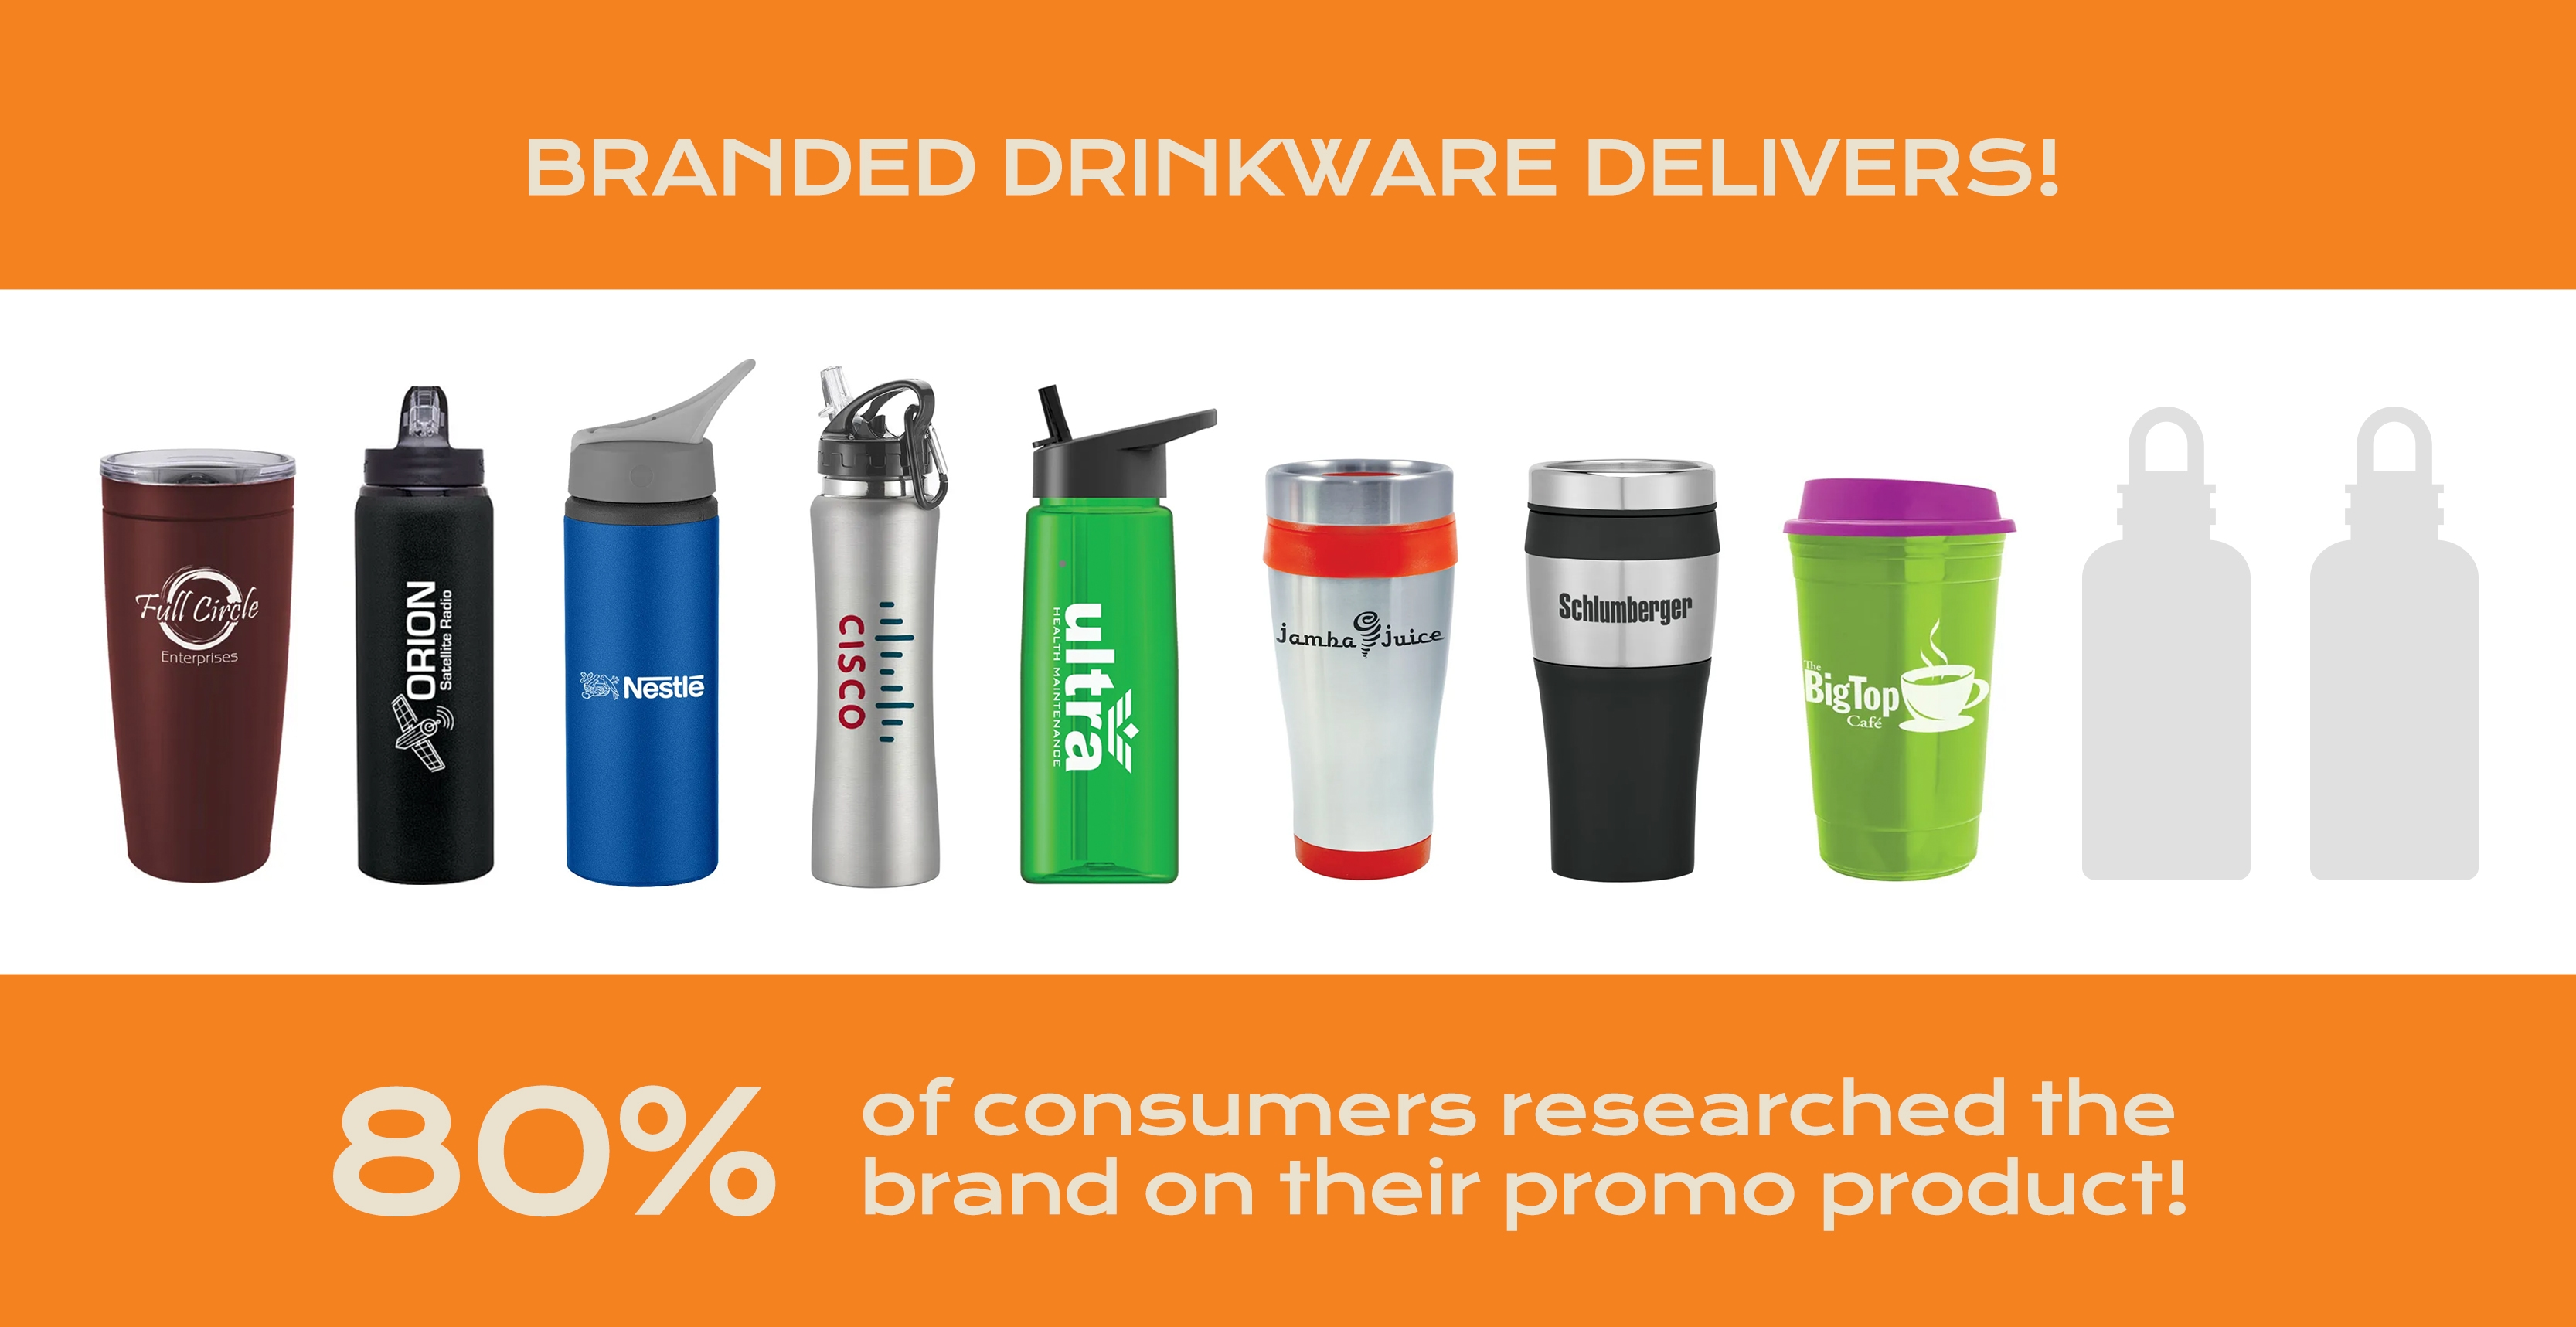 80% of consumers reasearched the brand on their drinkware